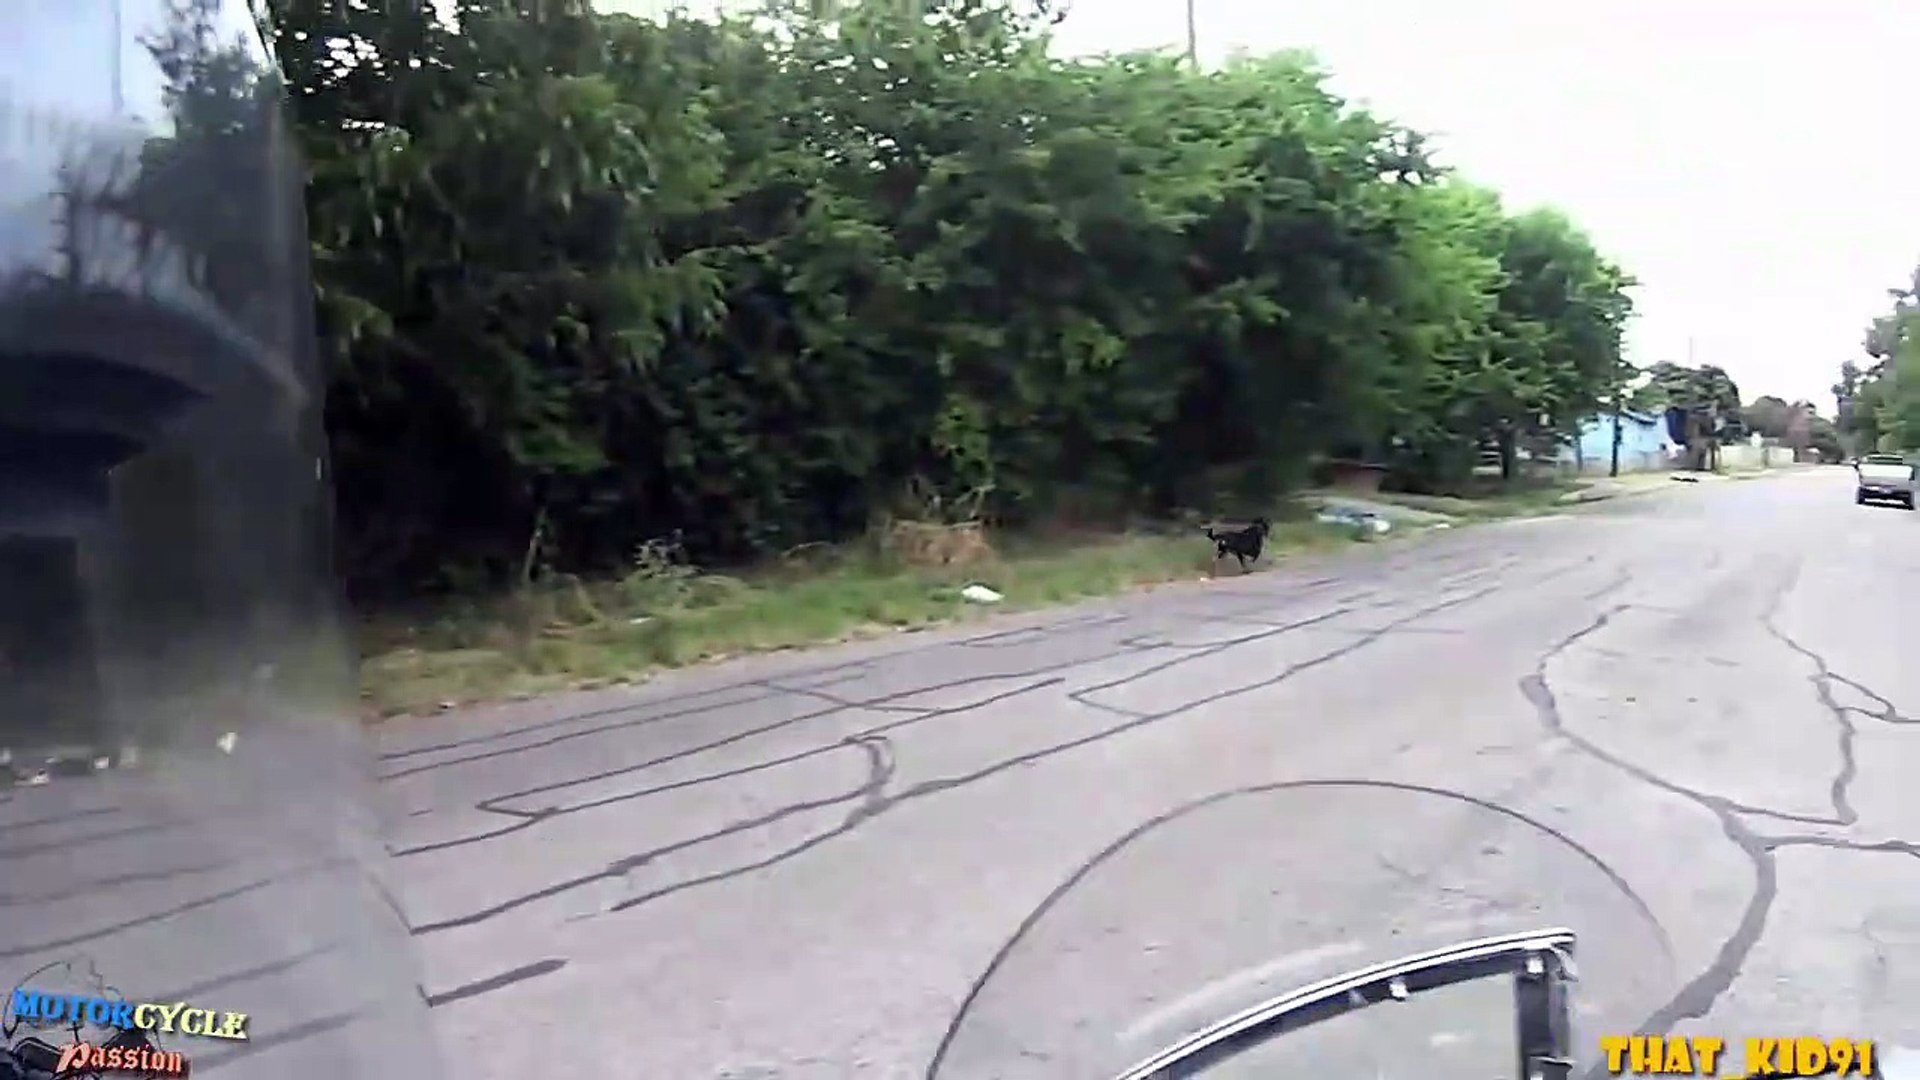 Dogs Attack Mo Poor Dogs & Motorcyclist Rescues